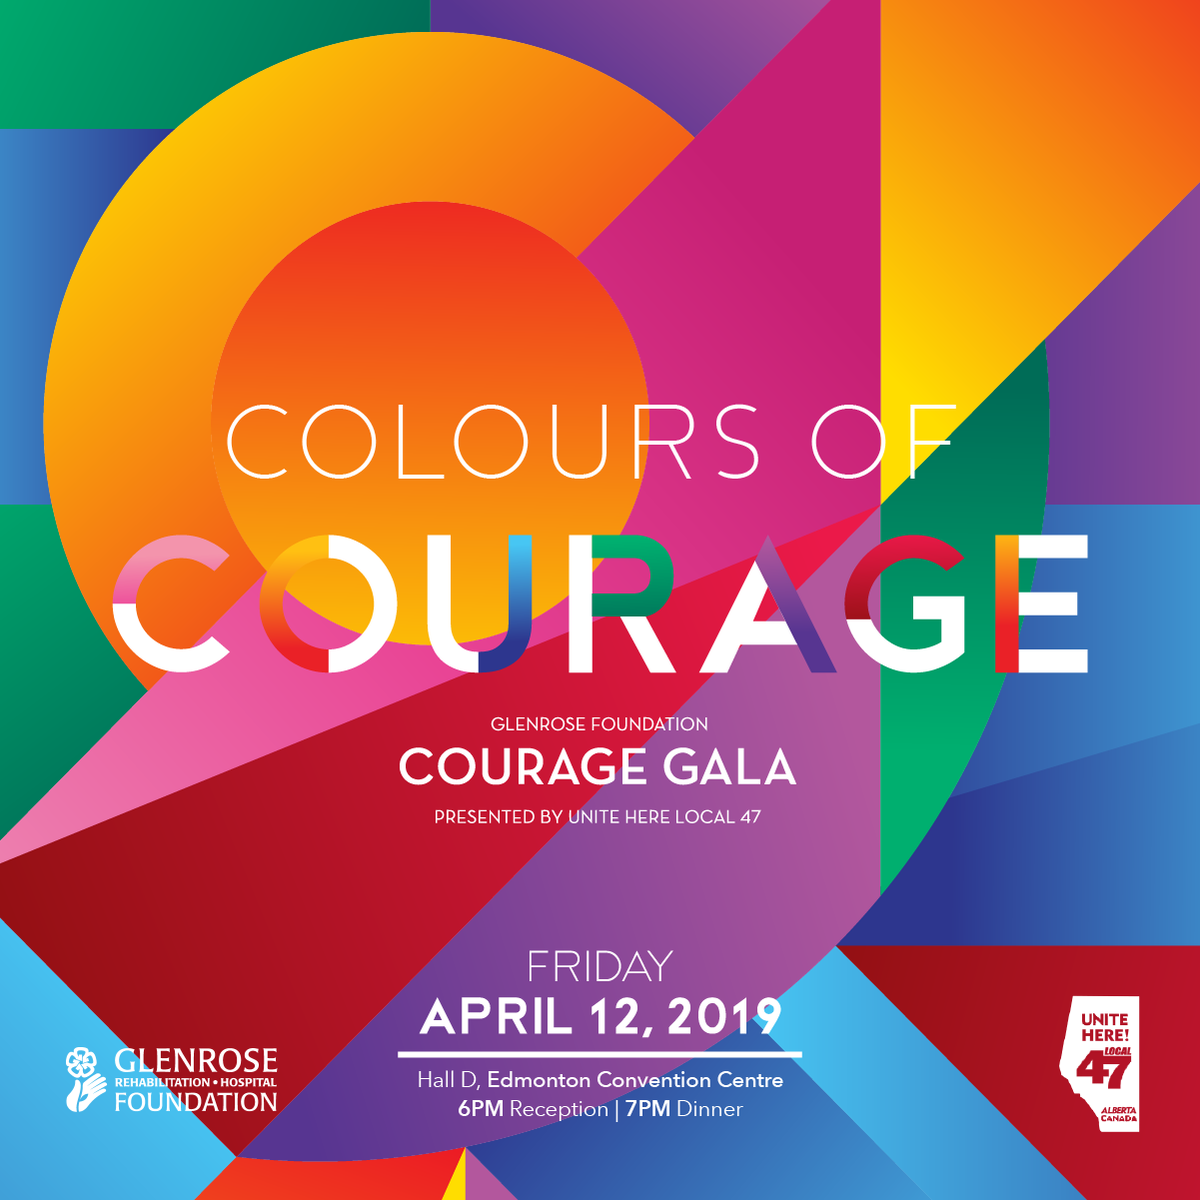 Only one week left to get your early bird tickets to Edmonton's premiere gala! https://bit.ly/2Gtxzas  #glenrosefoundation #uniteherelocal47